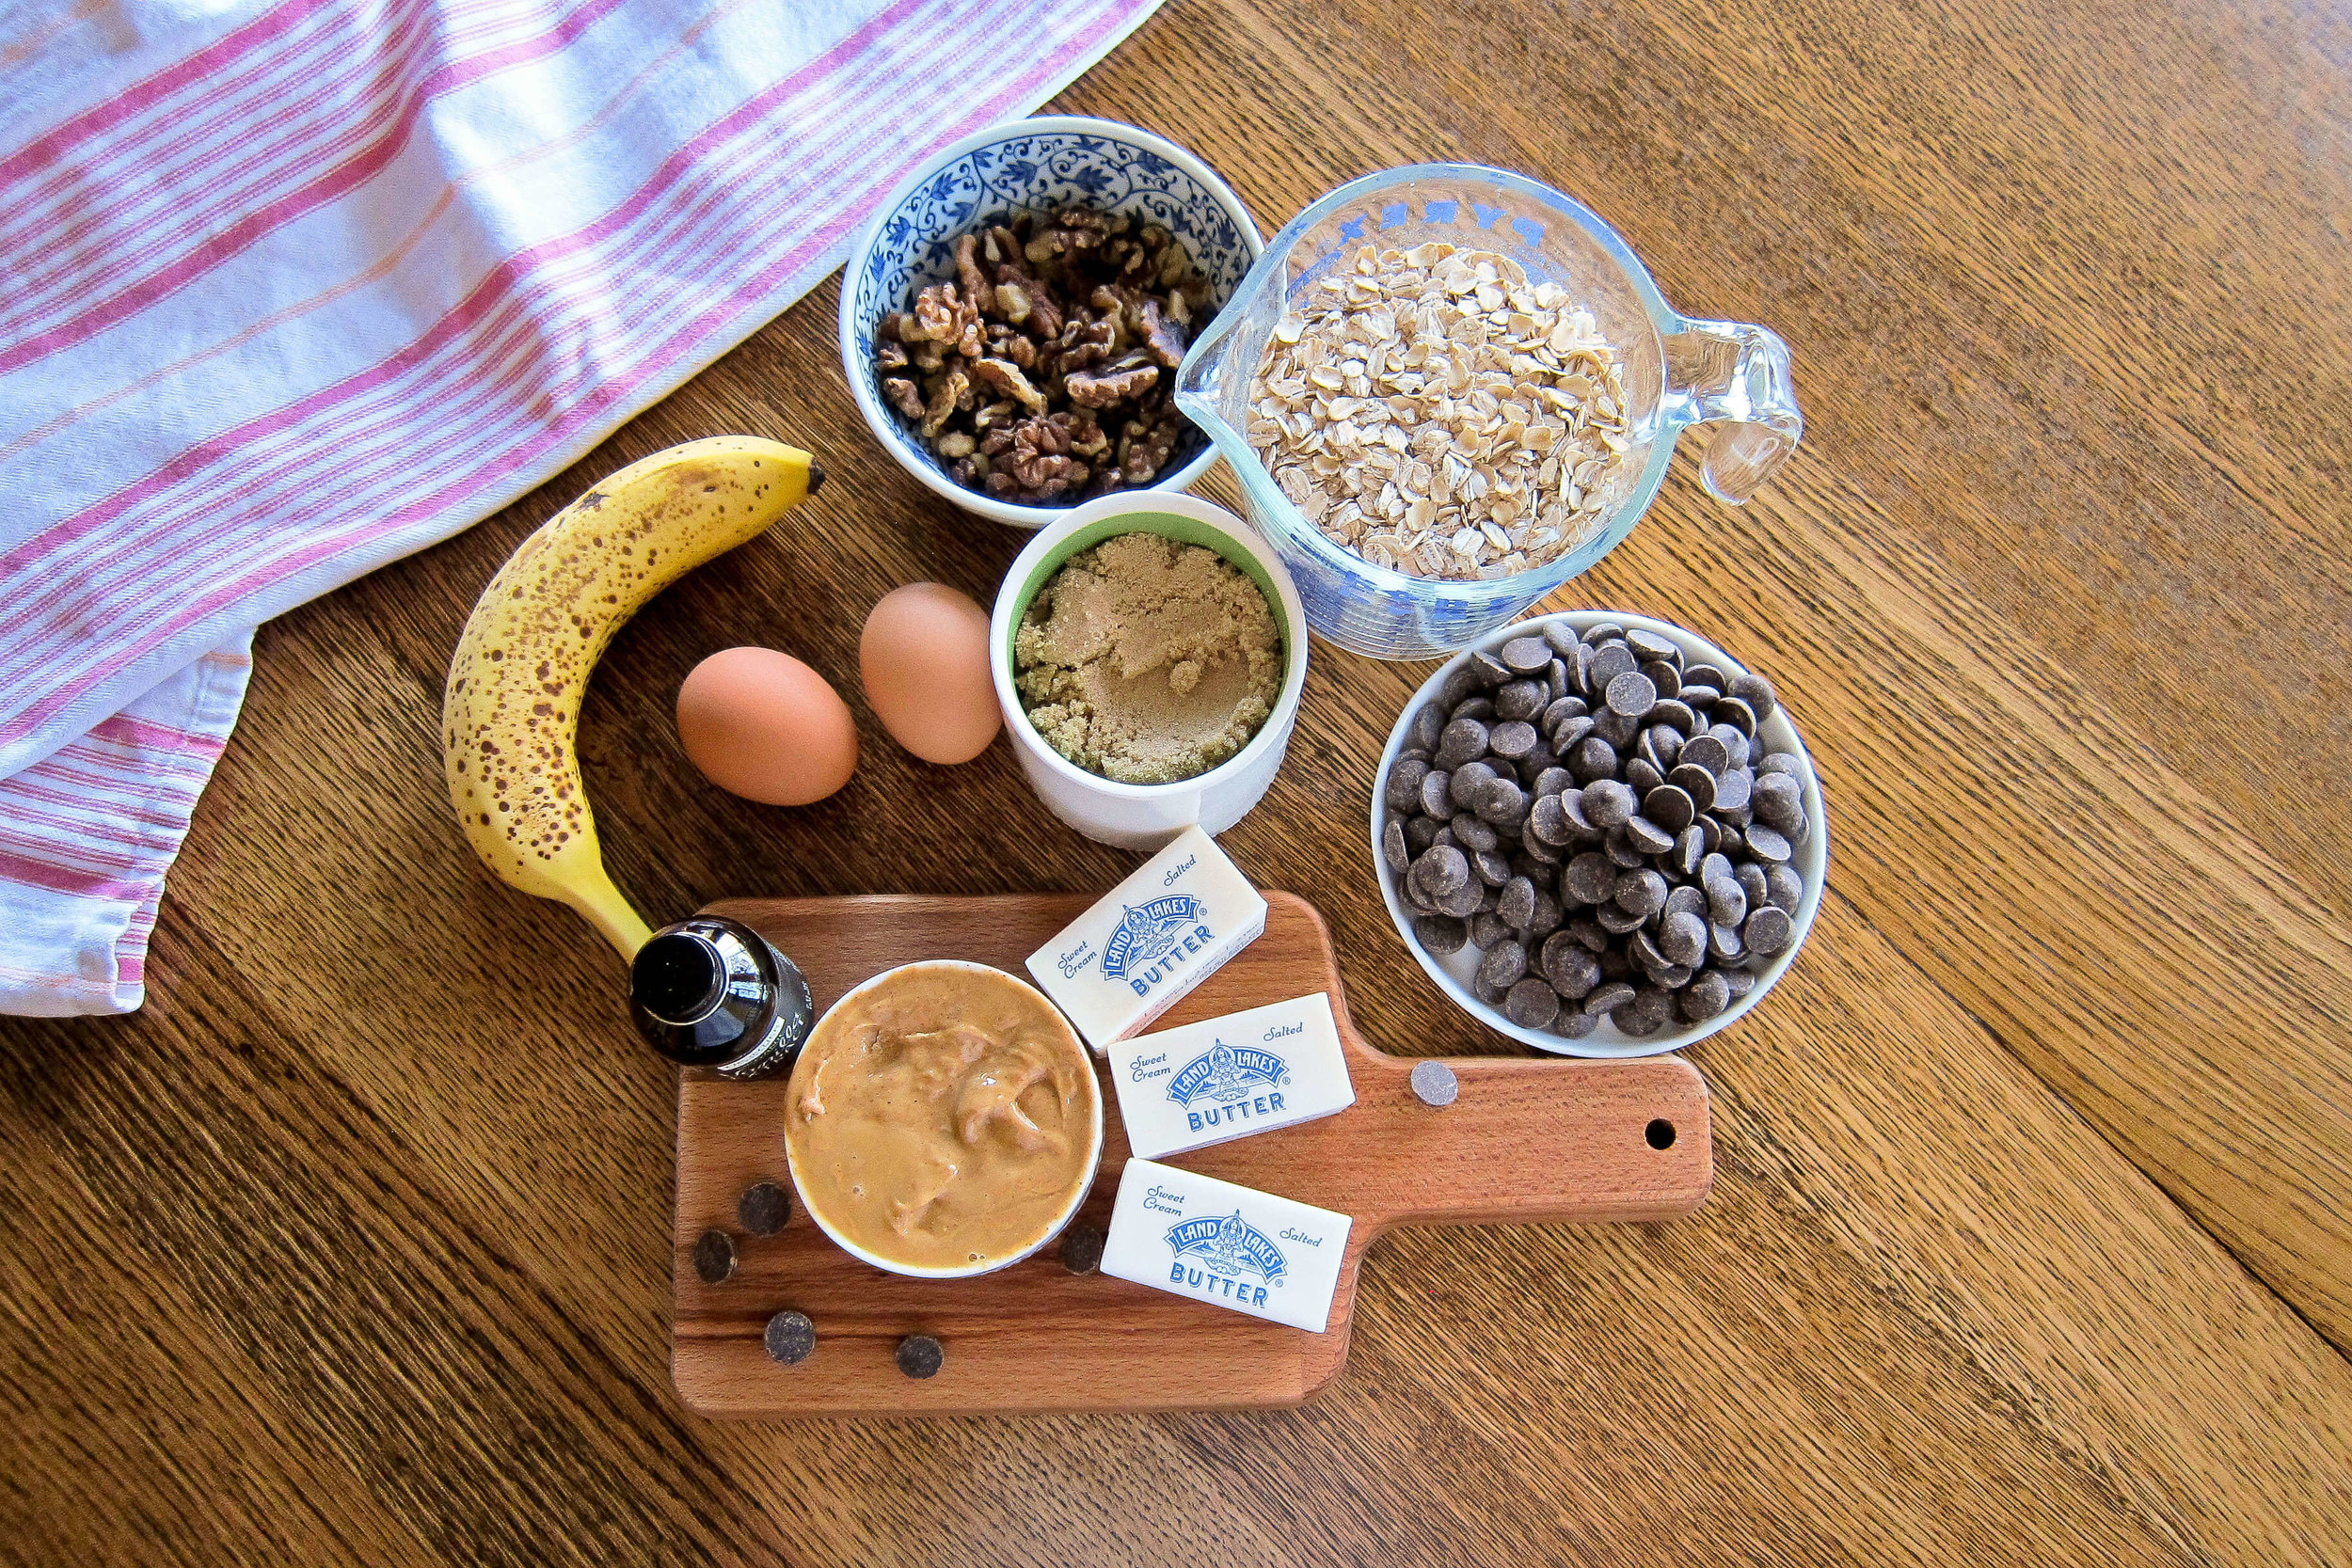 Chunky Monkey Peanut Butter Oatmeal Bars Ingredients